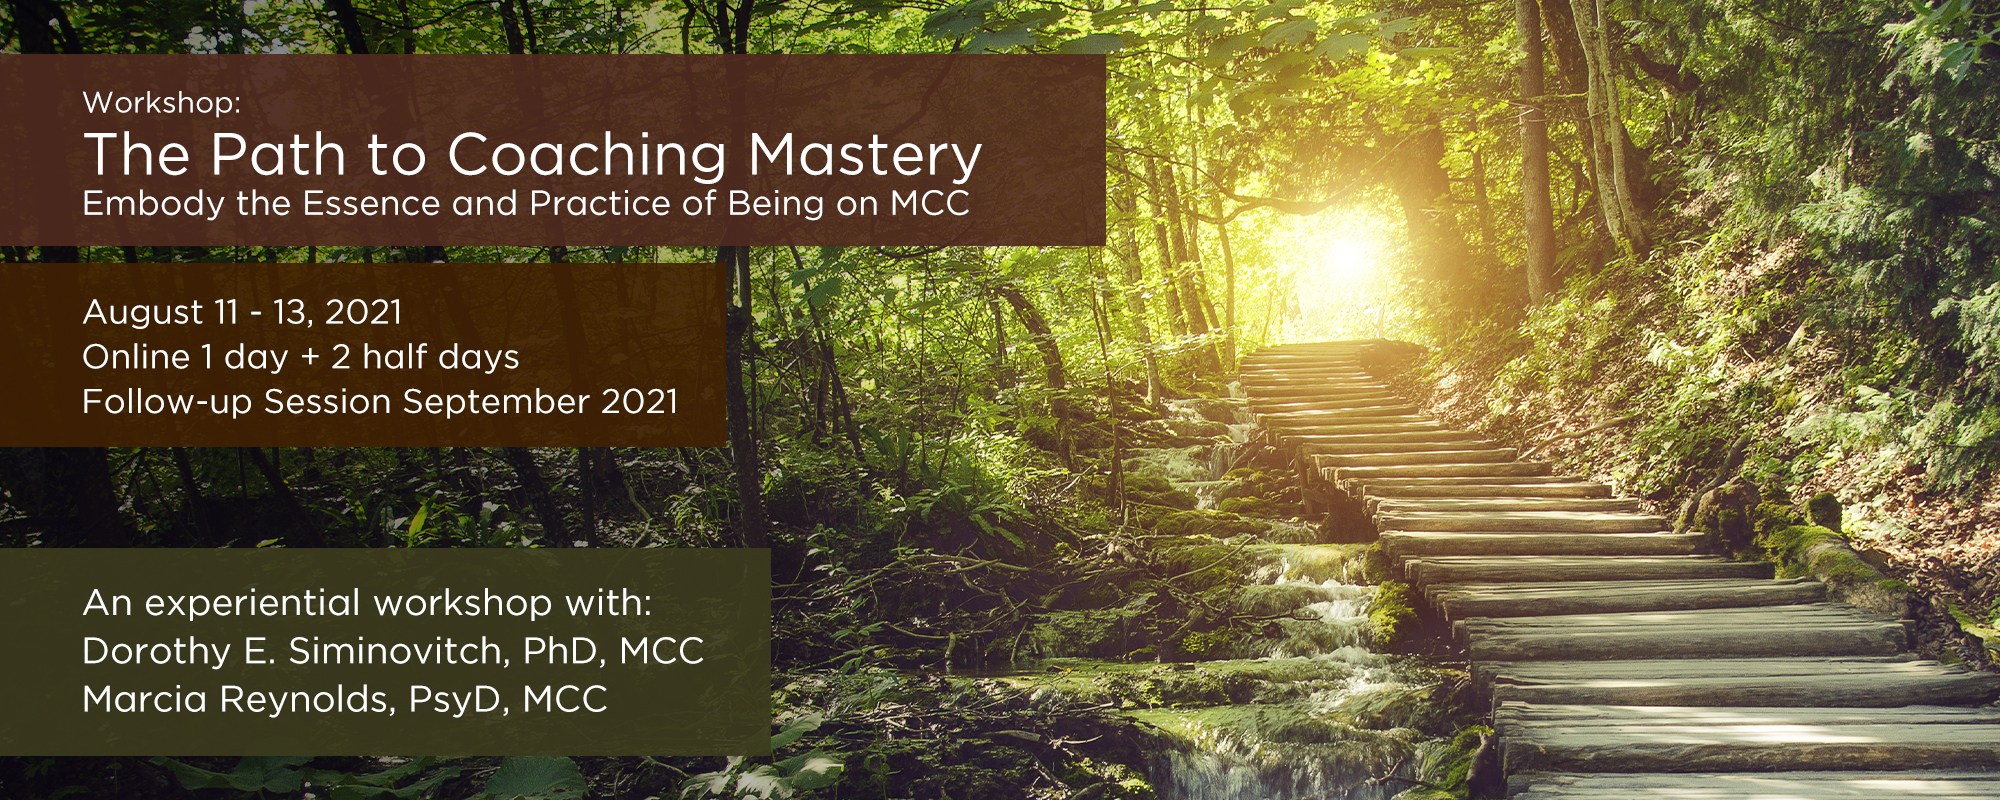 Coaching-Mastery-Course-Registration-Slider